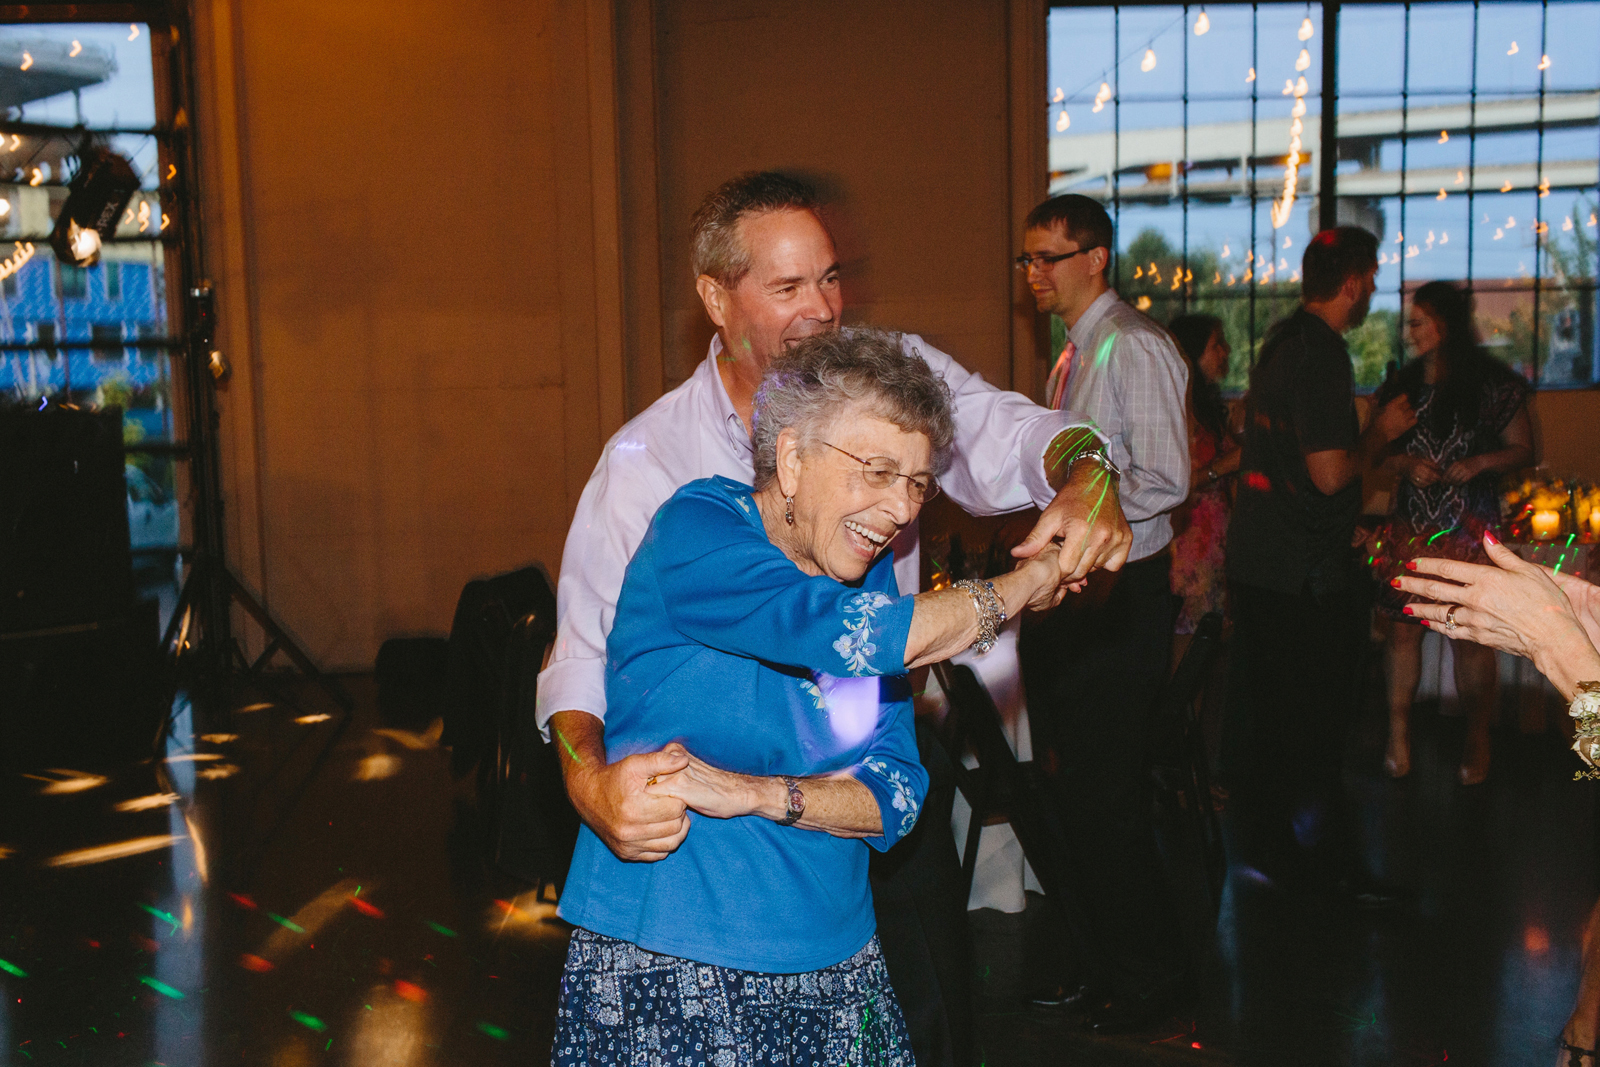 Grandma dancing at wedding reception at Castaway in Portland, Oregon